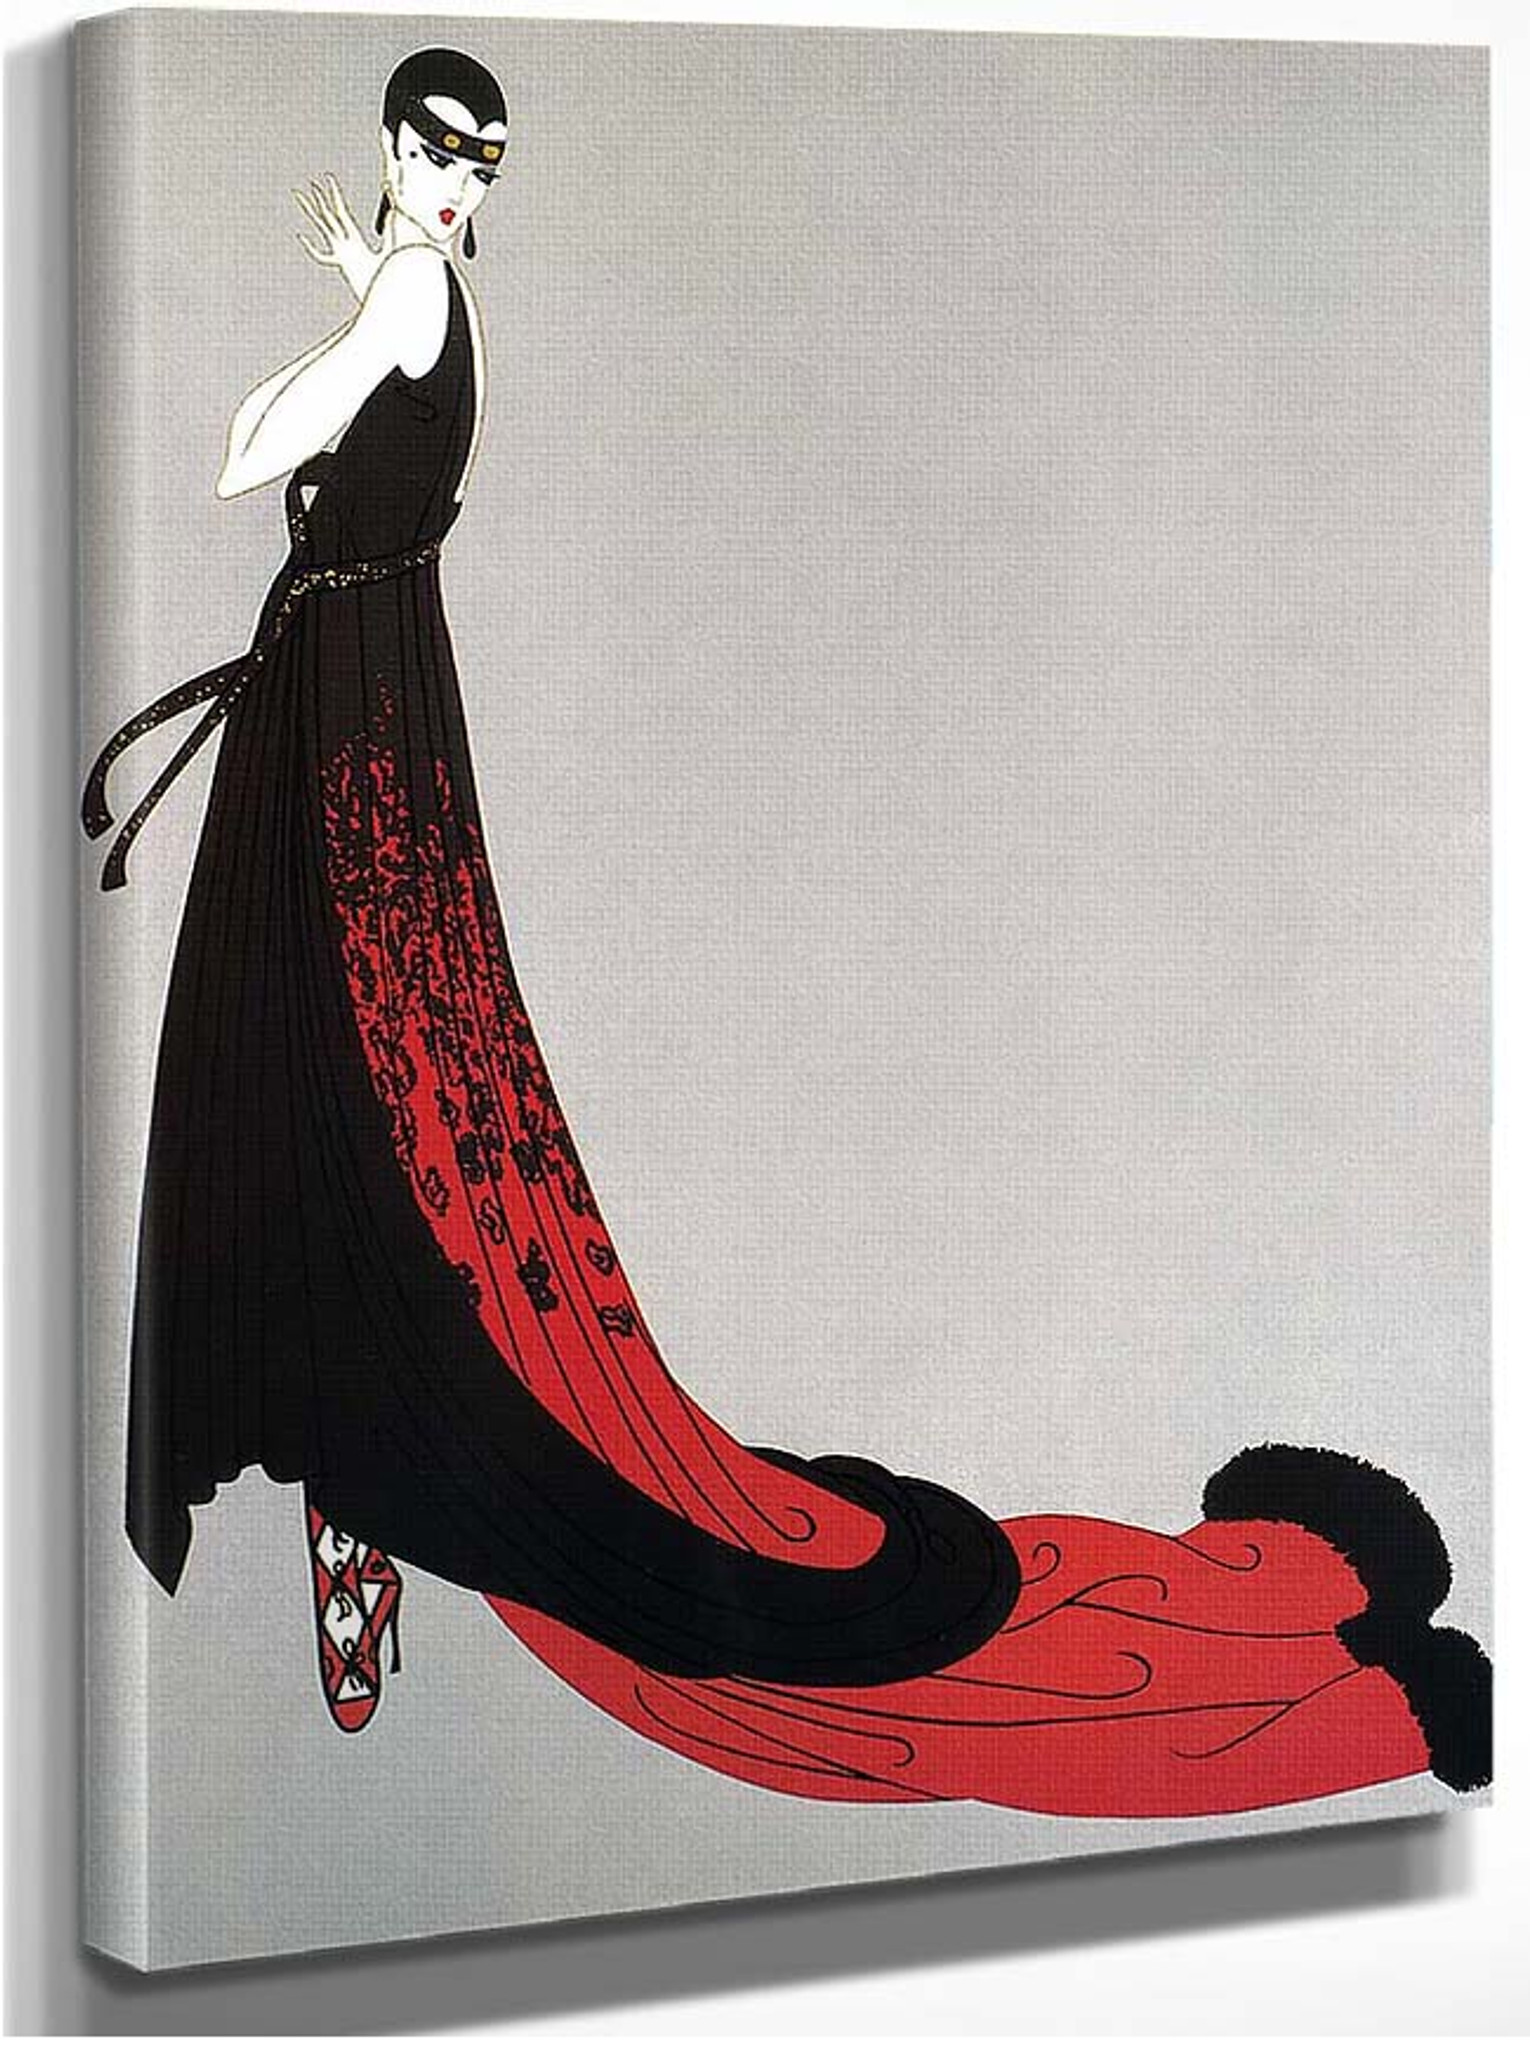 Erte Evening Dress Giclee Canvas Print Paintings Poster Reproduction